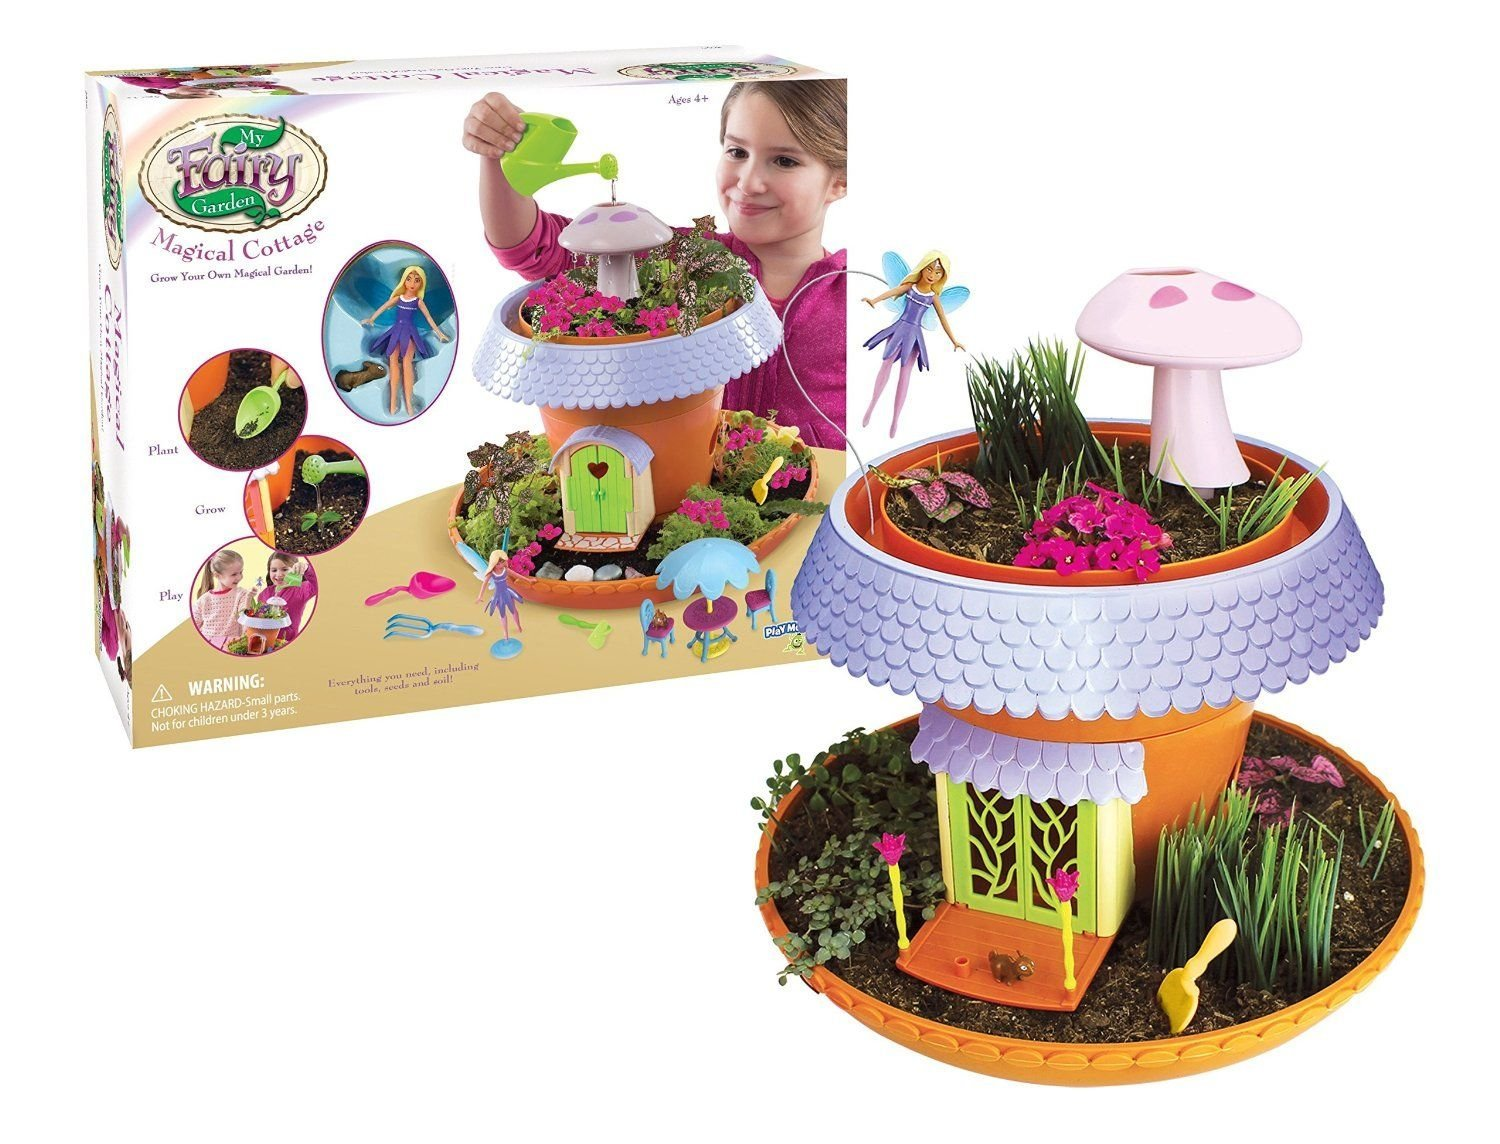 My Fairy Garden Magical Cottage Playset (Photo: Business Wire)